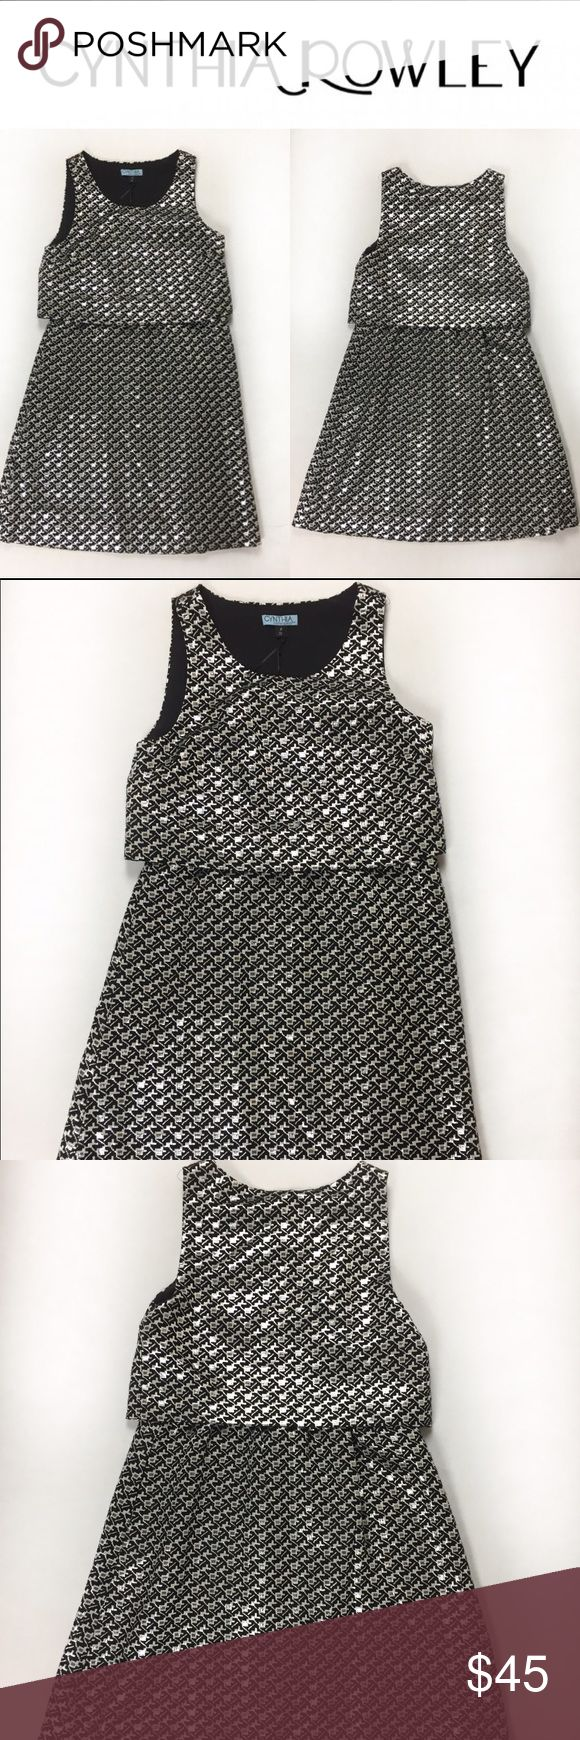 SALE! Cynthia Rowley black and silver dress SZ 4 Gorgeous Cynthia Rowley houndstooth black and silver mini dress, has an elastic in the middle creating a 2 piece dress effect. It's stunning, pictures do no justice! This is a brand new item without tags since it was a present, unfortunately does not fit me. Love it? Make an offer! Questions? Ask me!  Cynthia Rowley Dresses Mini